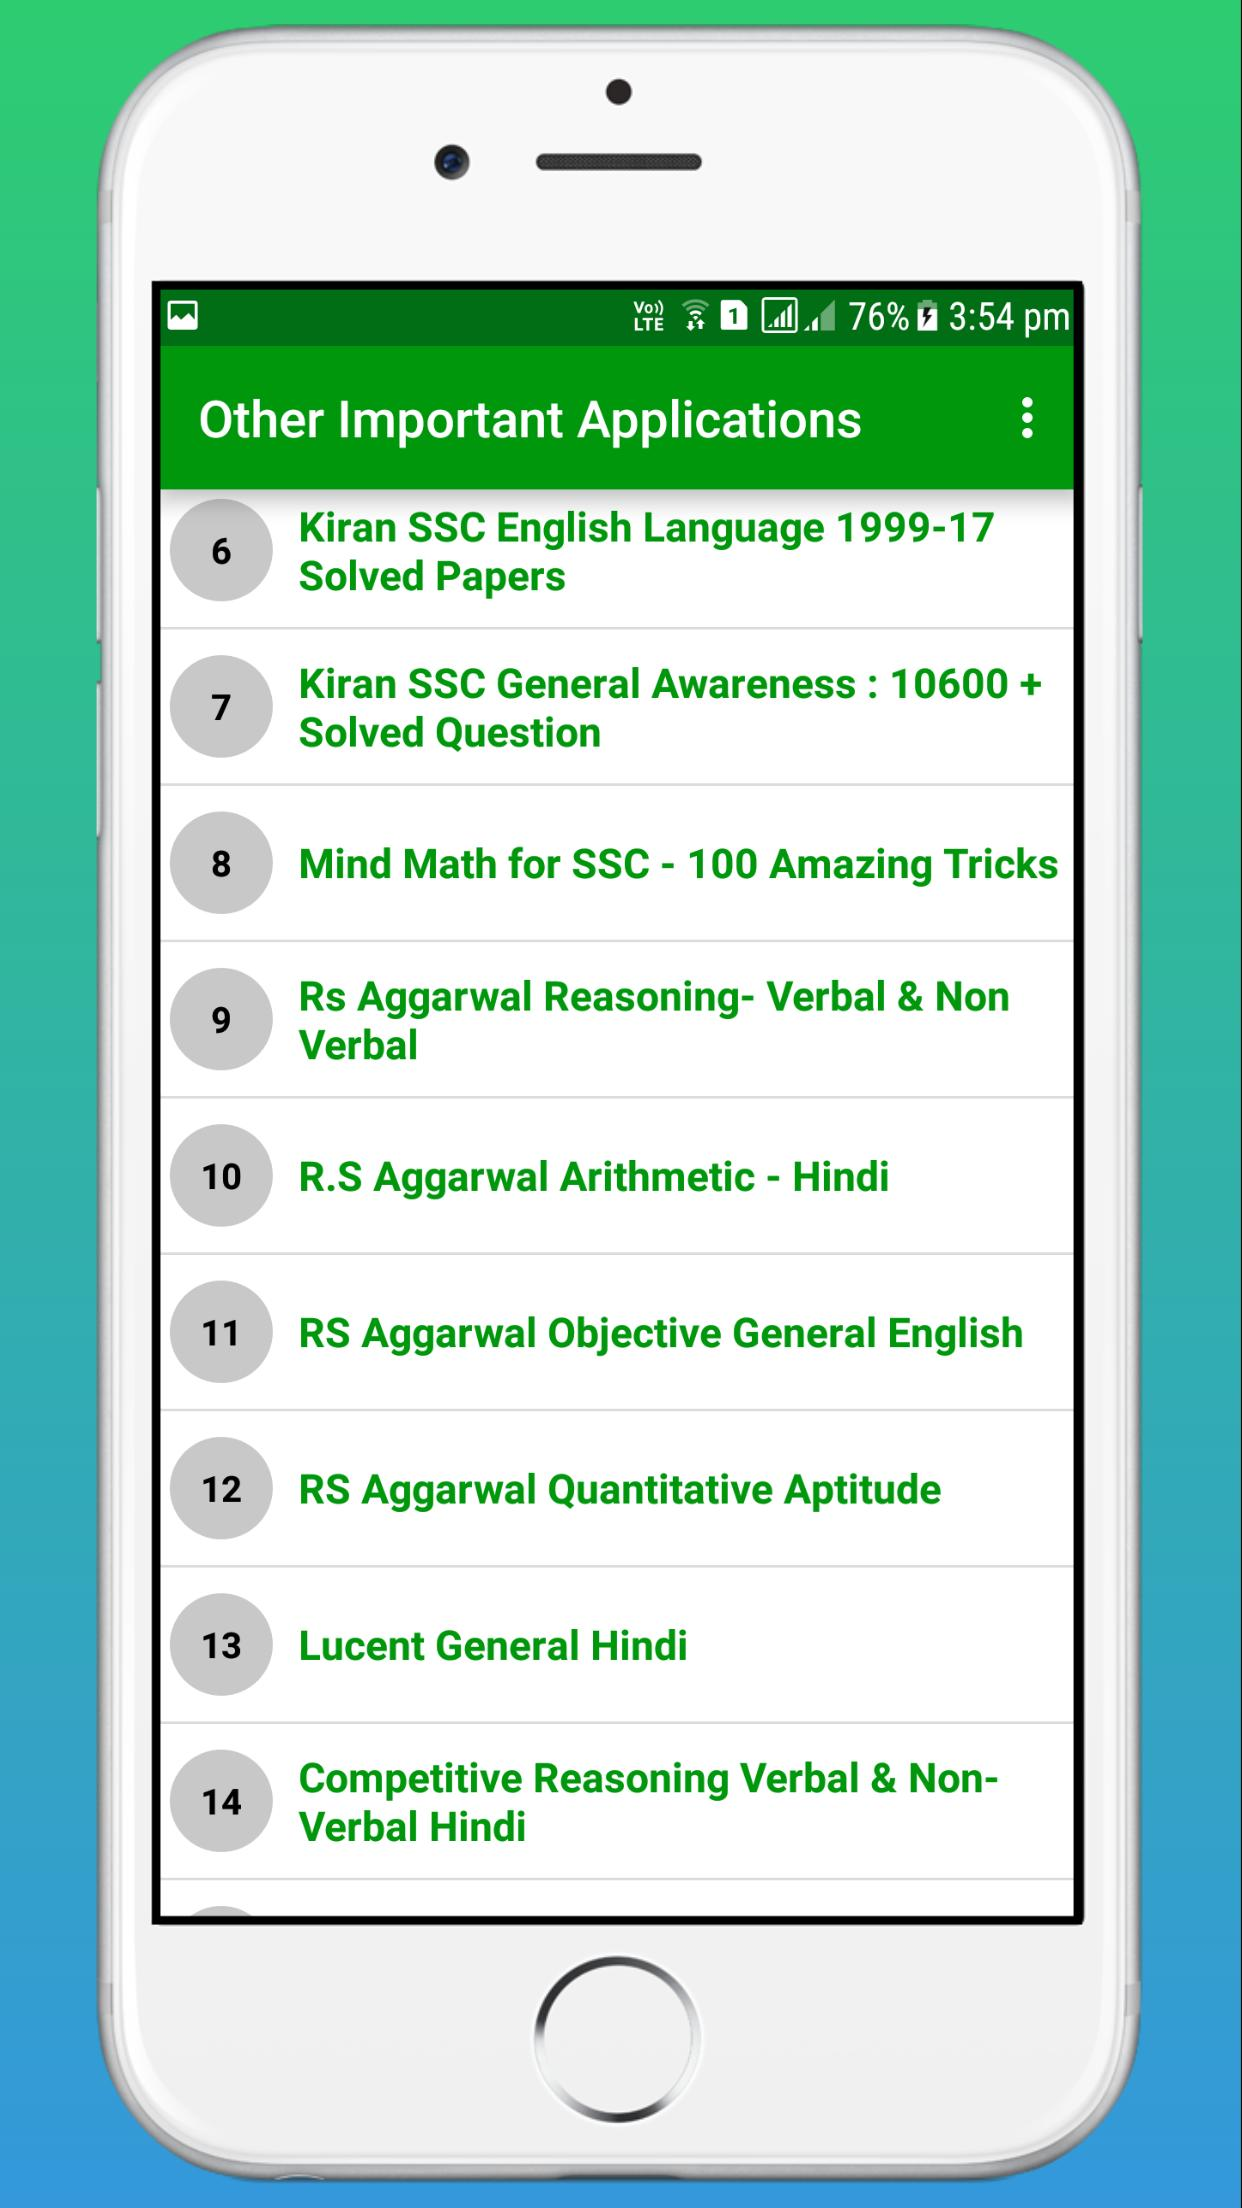 SSC General Studies in Hindi for Android - APK Download